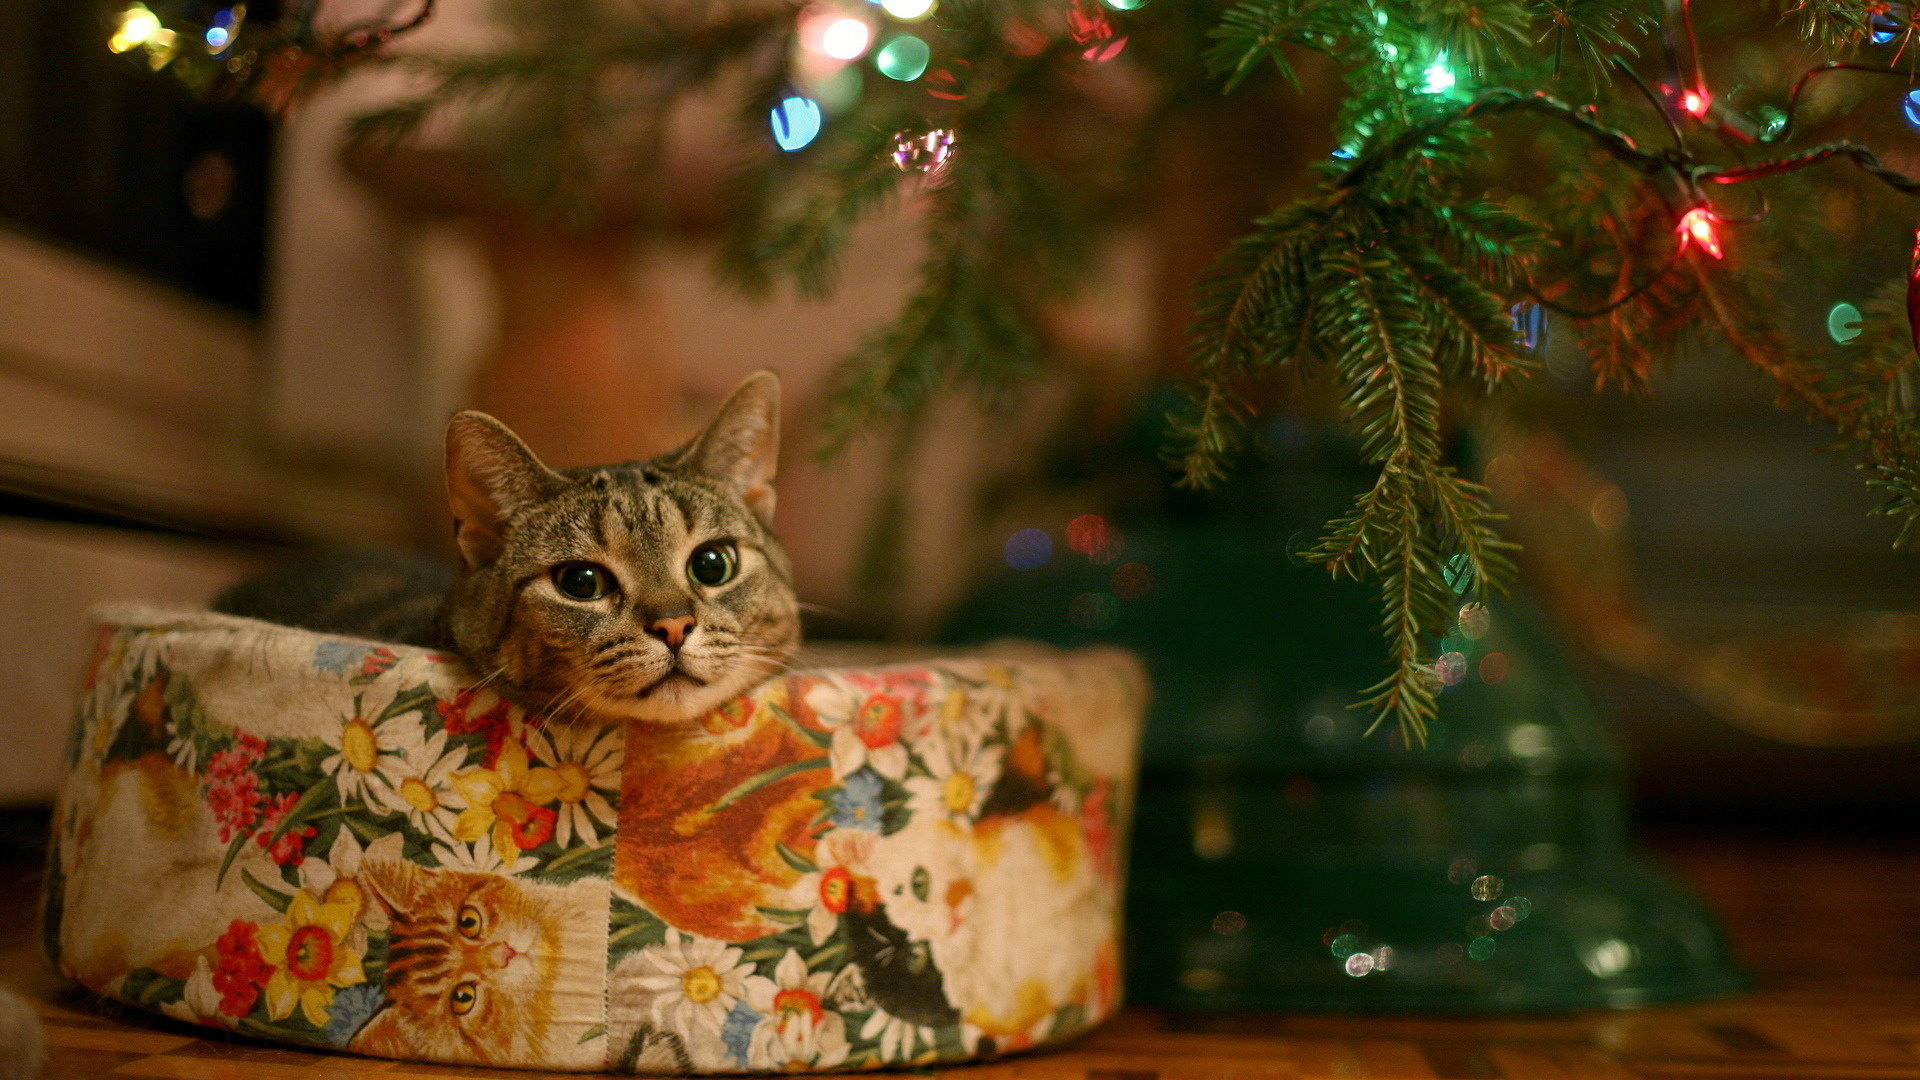 Cute christmas cat Full HD 1080p wallpaper 19201080 Cat 1920x1080